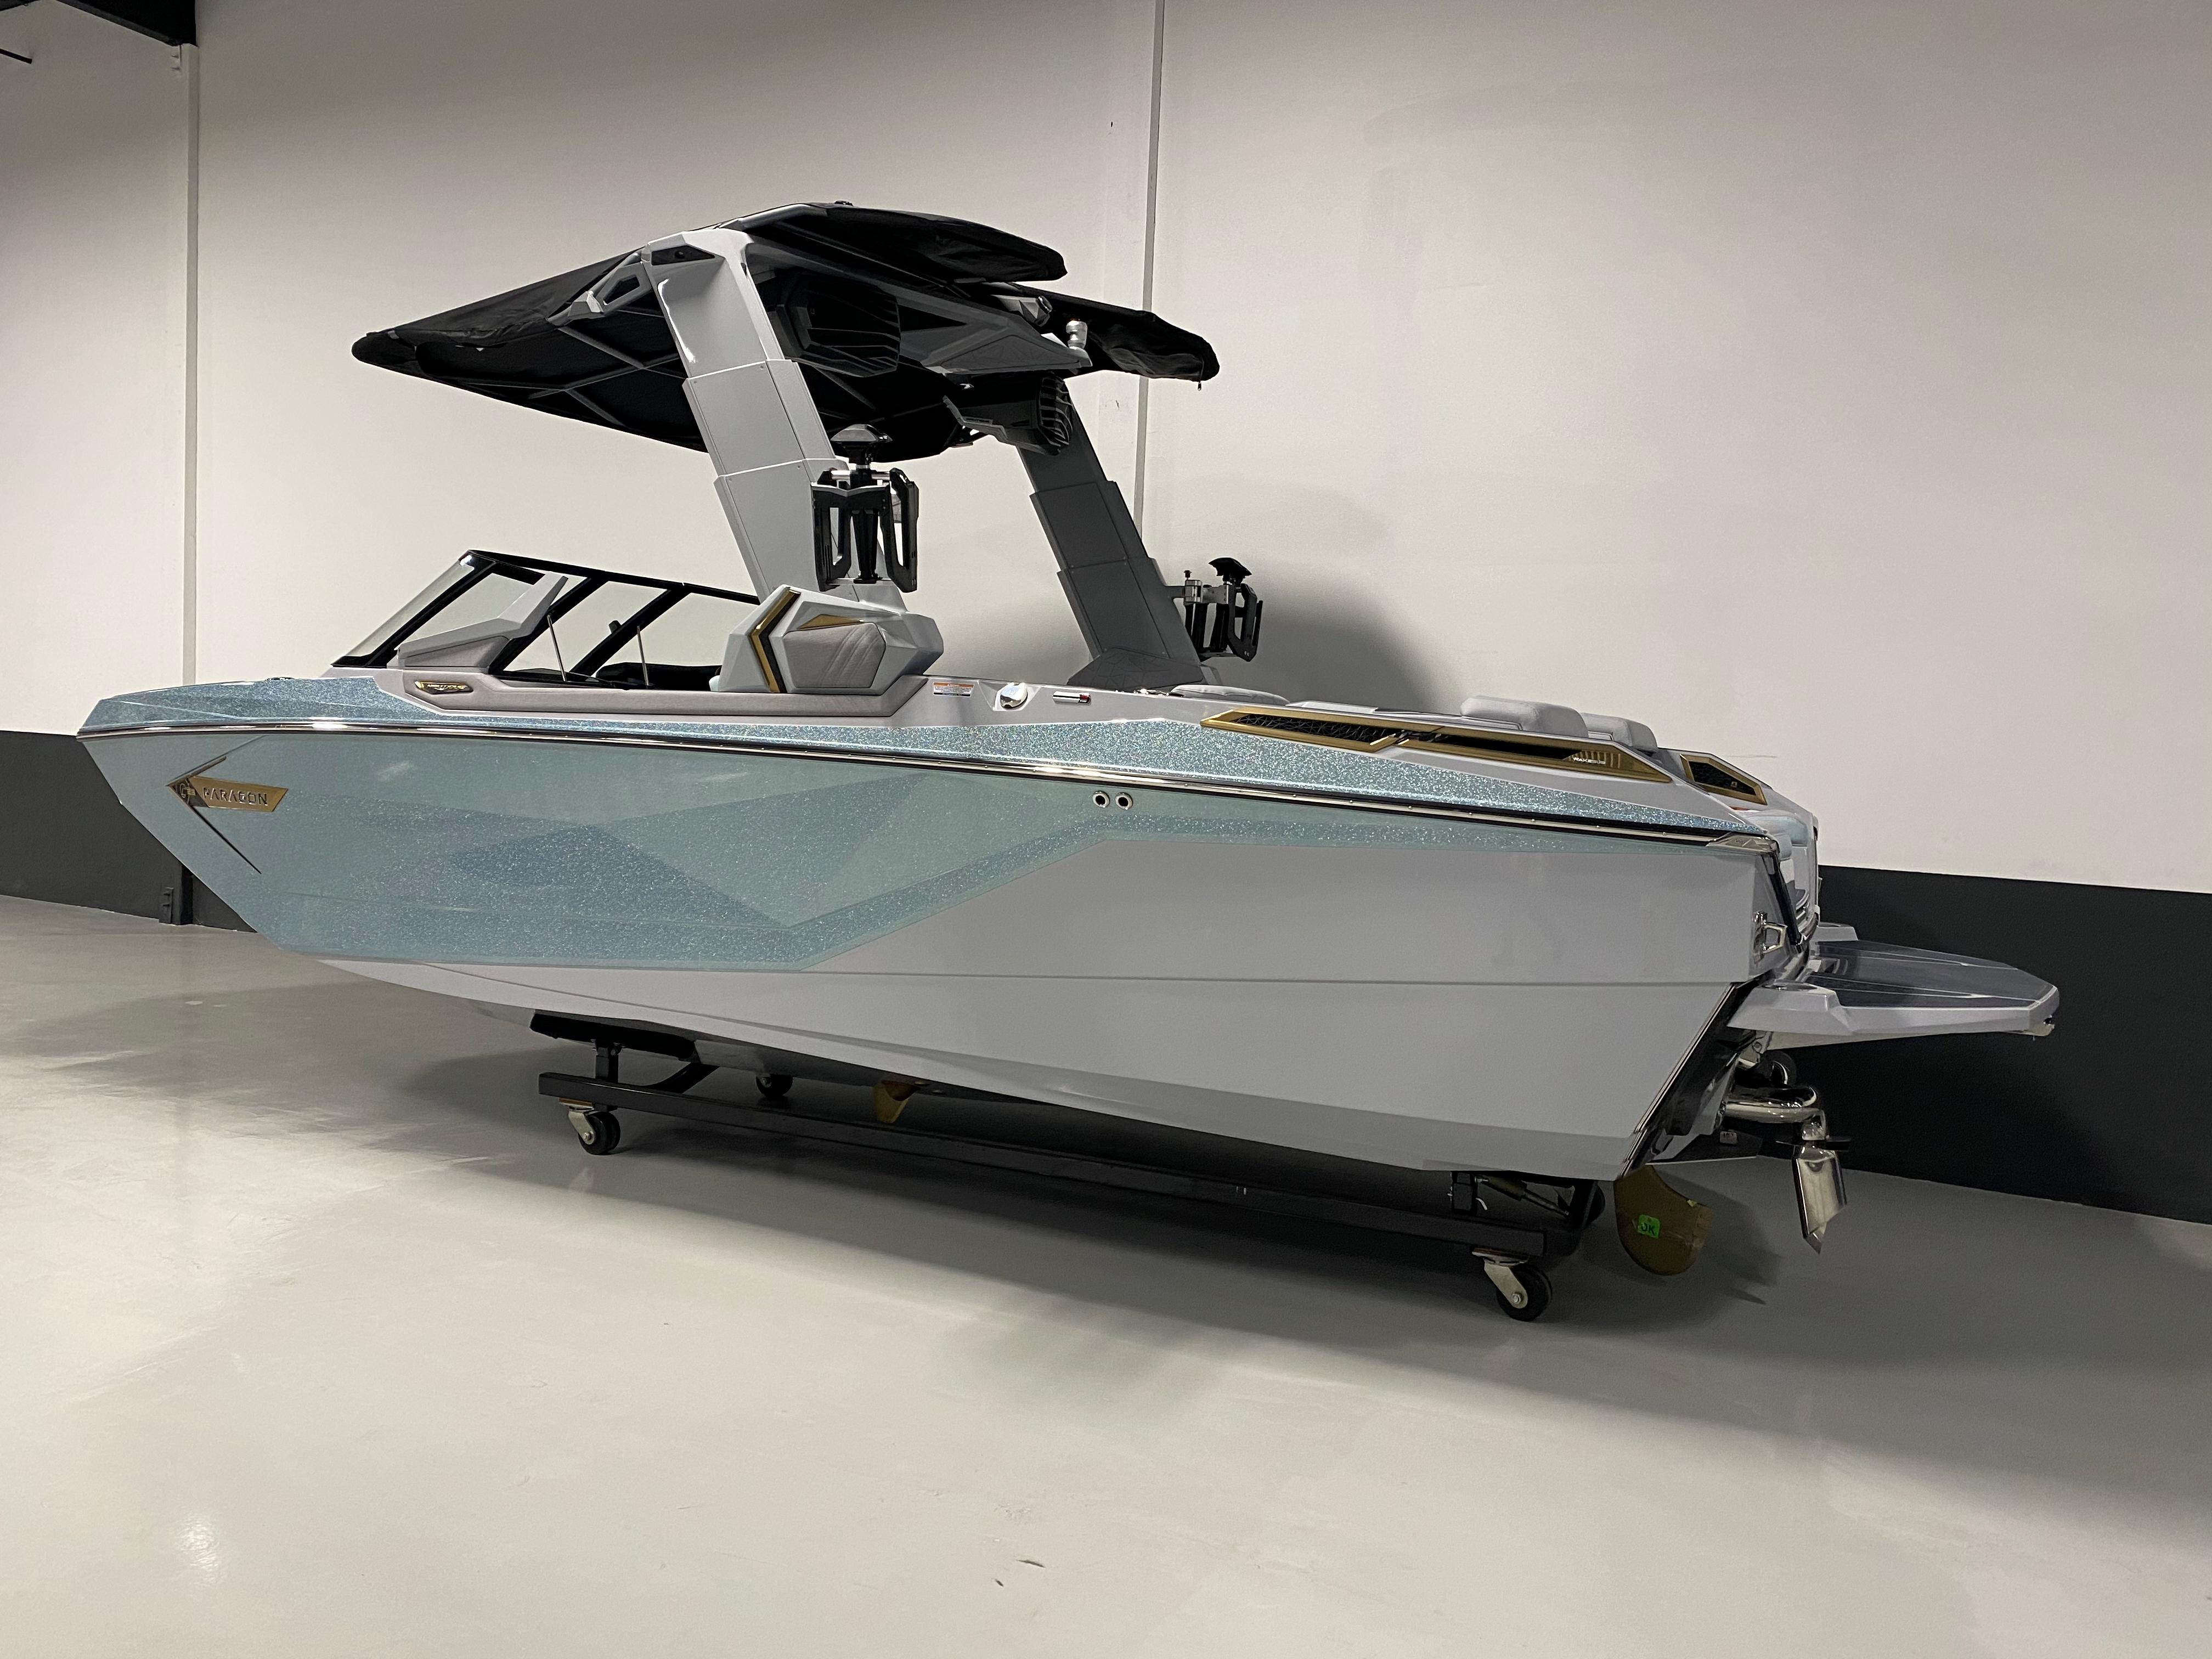 2021 Nautique Super Air Nautique G23 Paragon #N127L inventory image at Sun Country Inland in Lake Havasu City